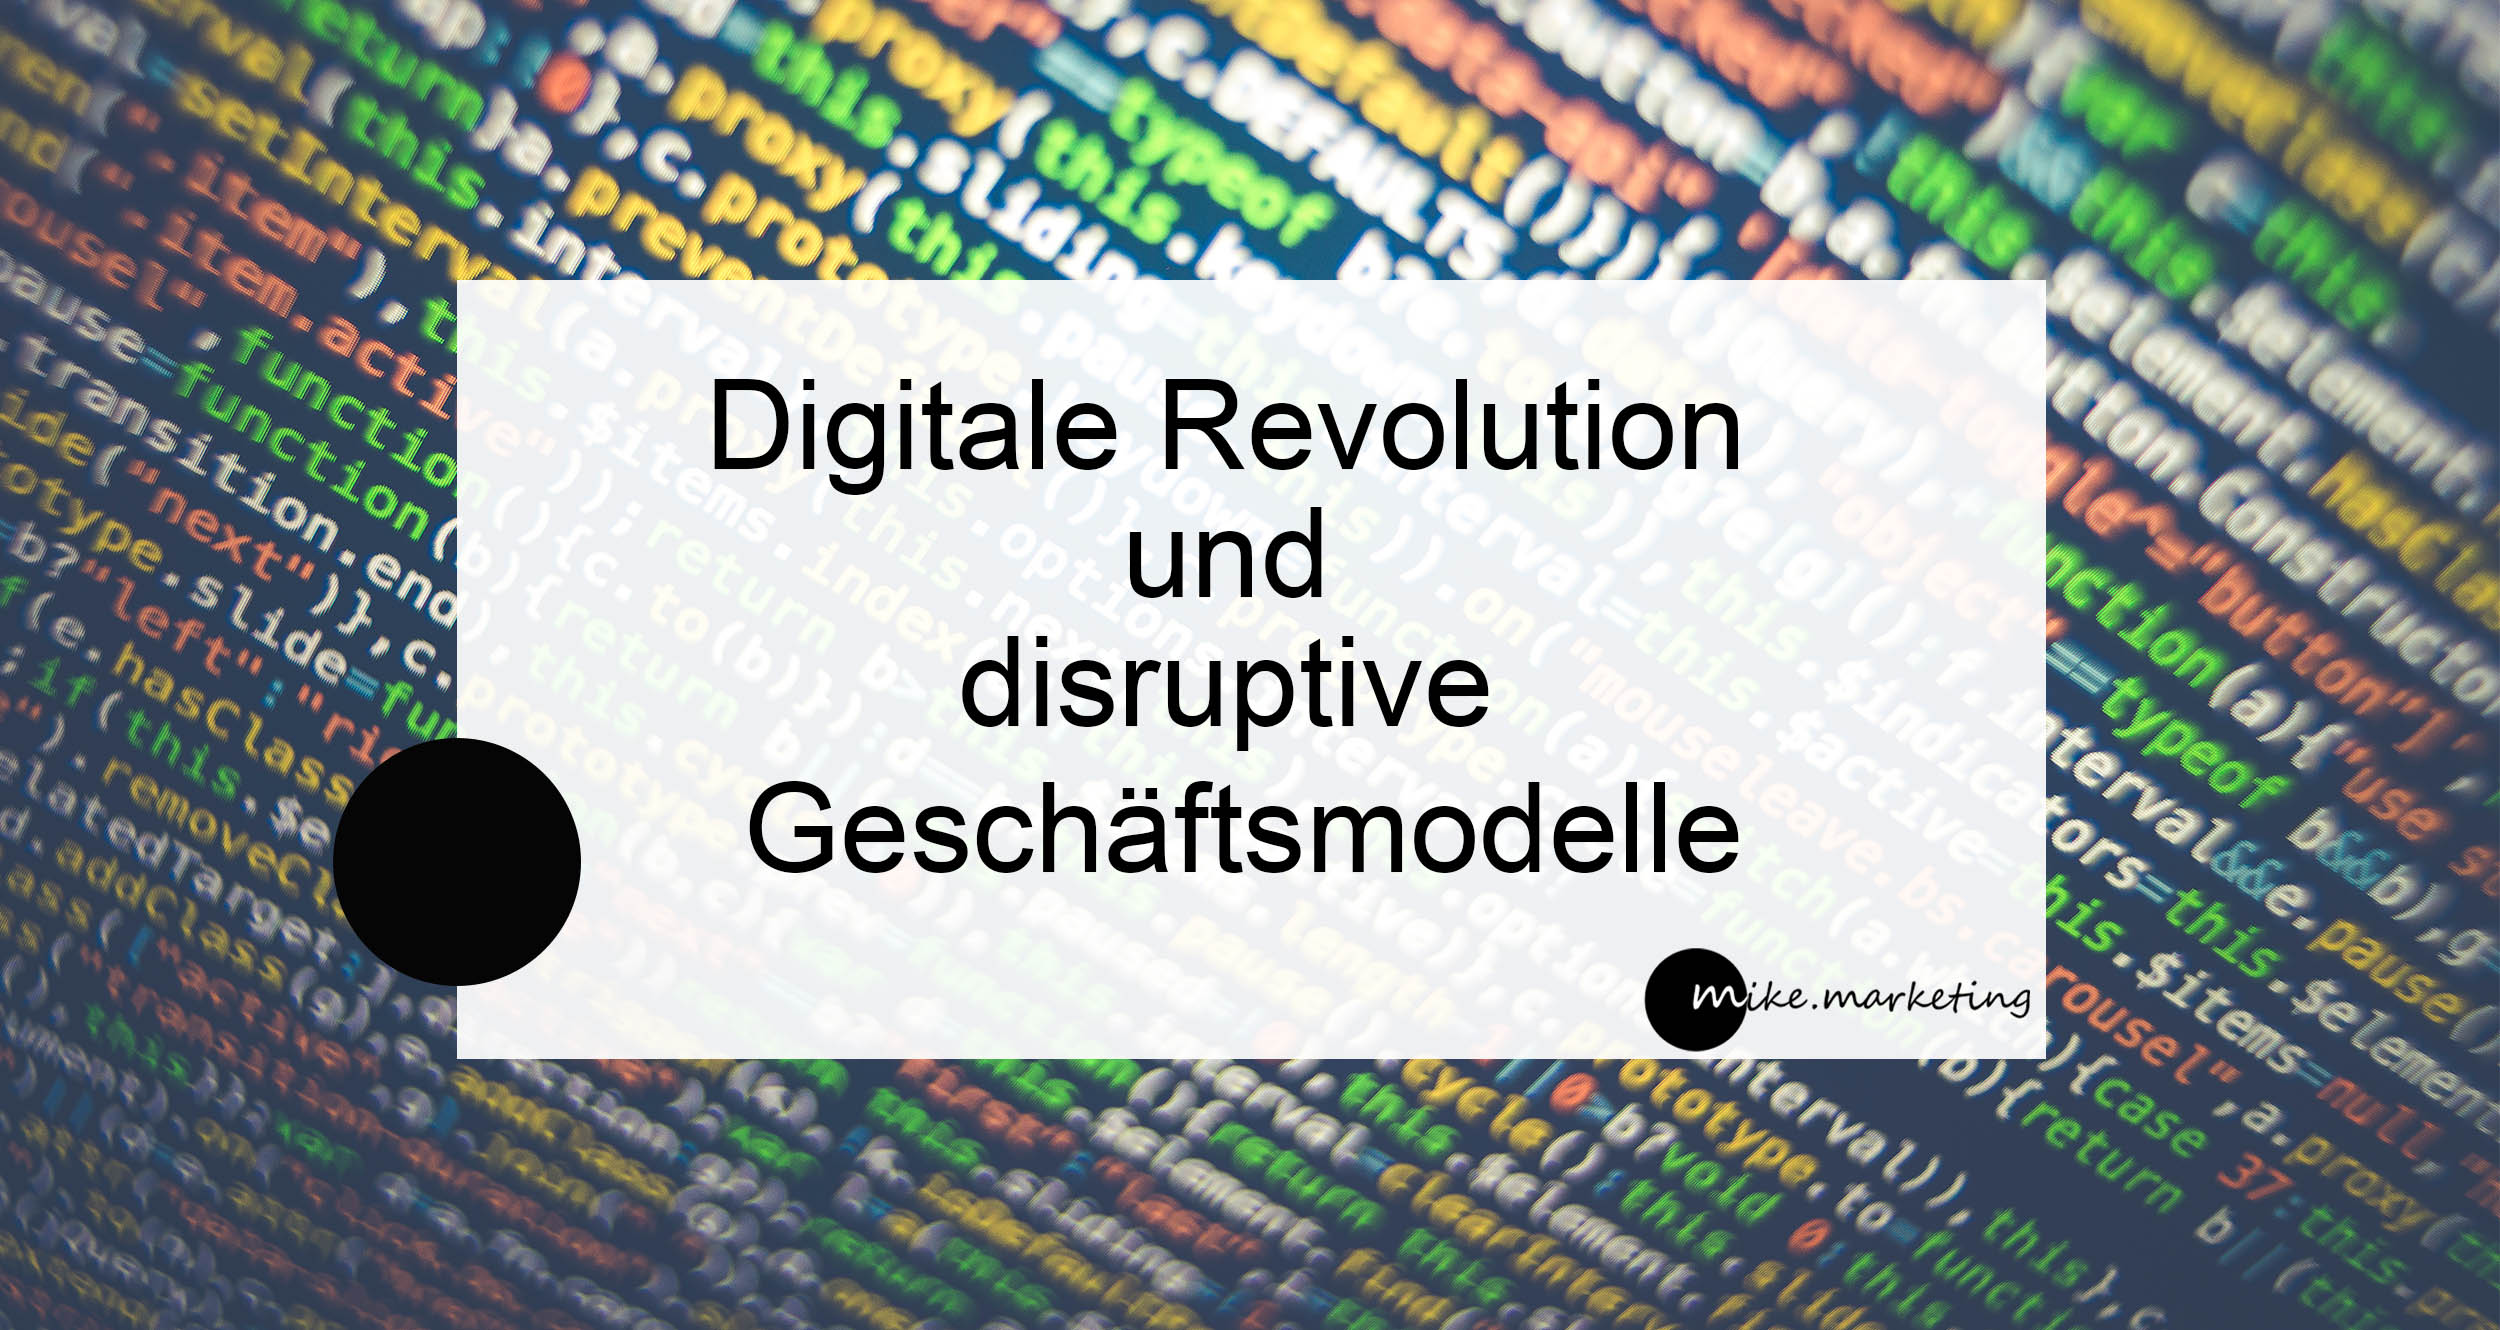 Digitale Revolution und disruptive GModelle_mikemarketing